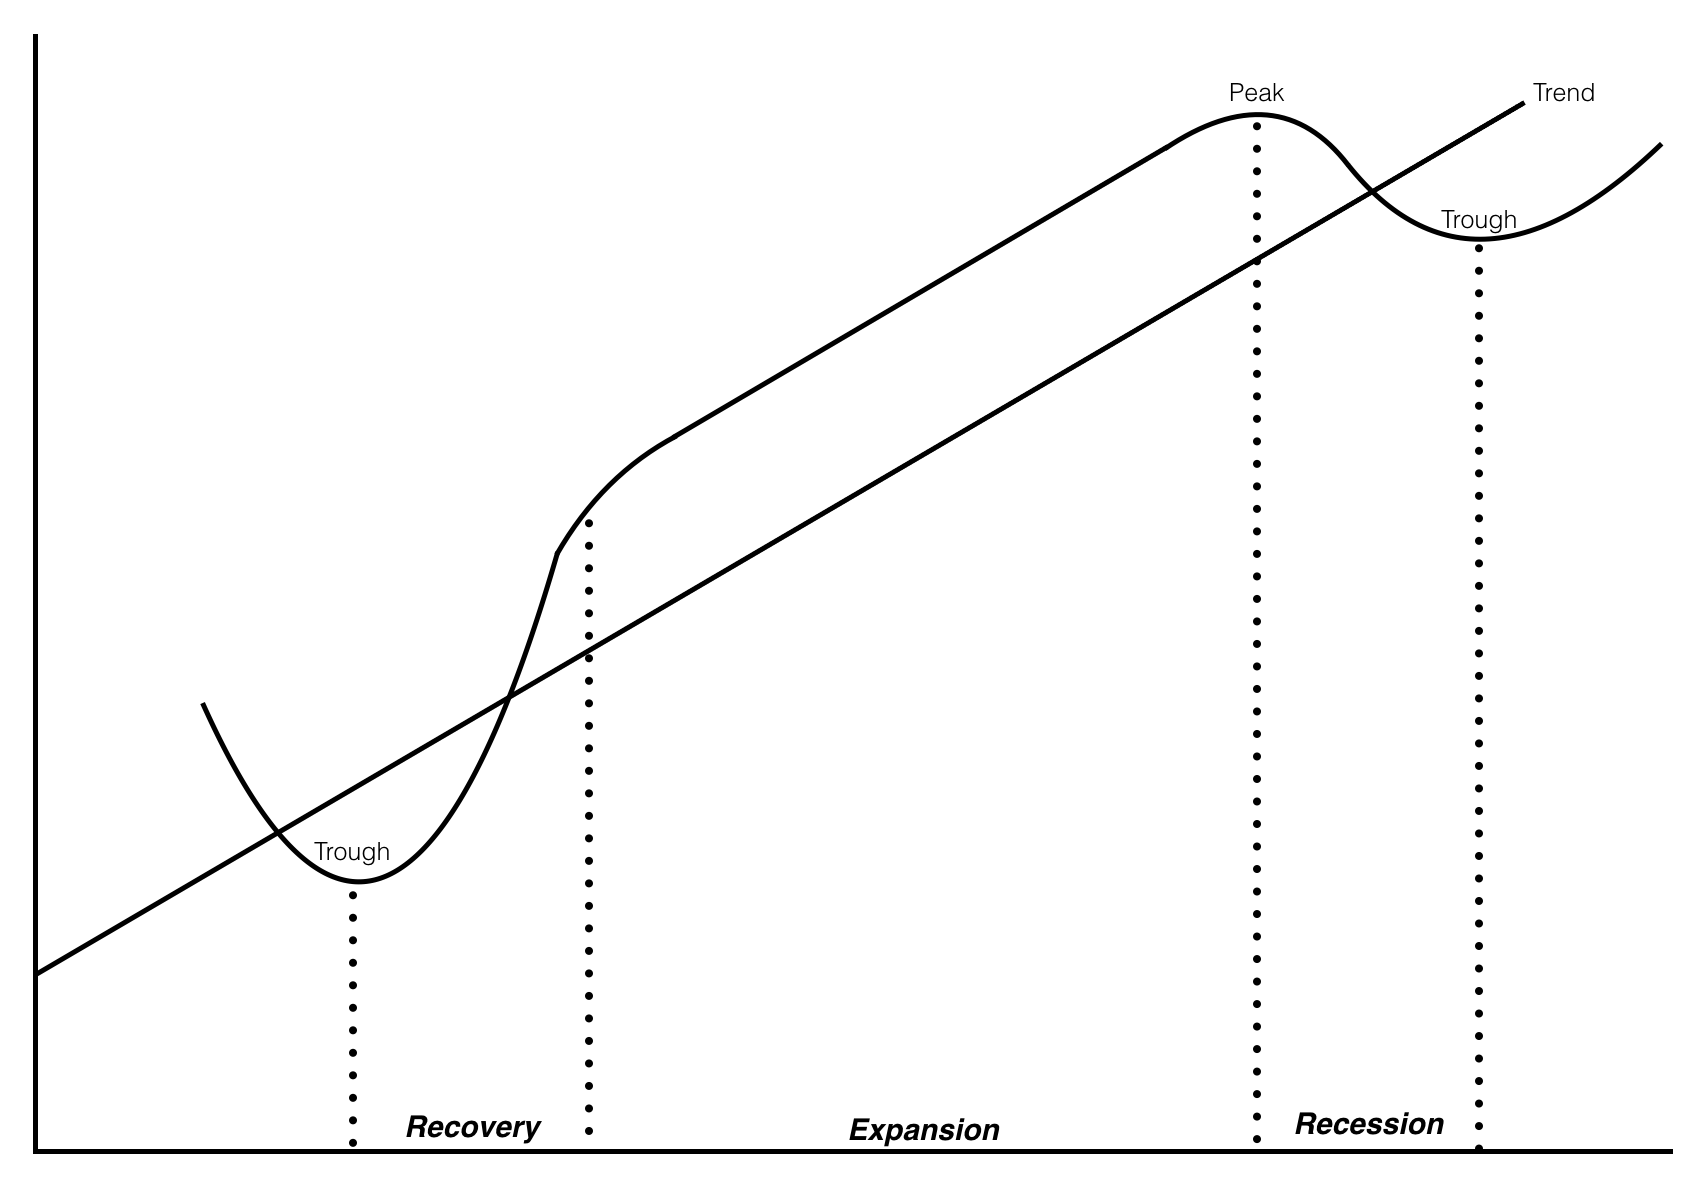 Business Cycles Visual.png